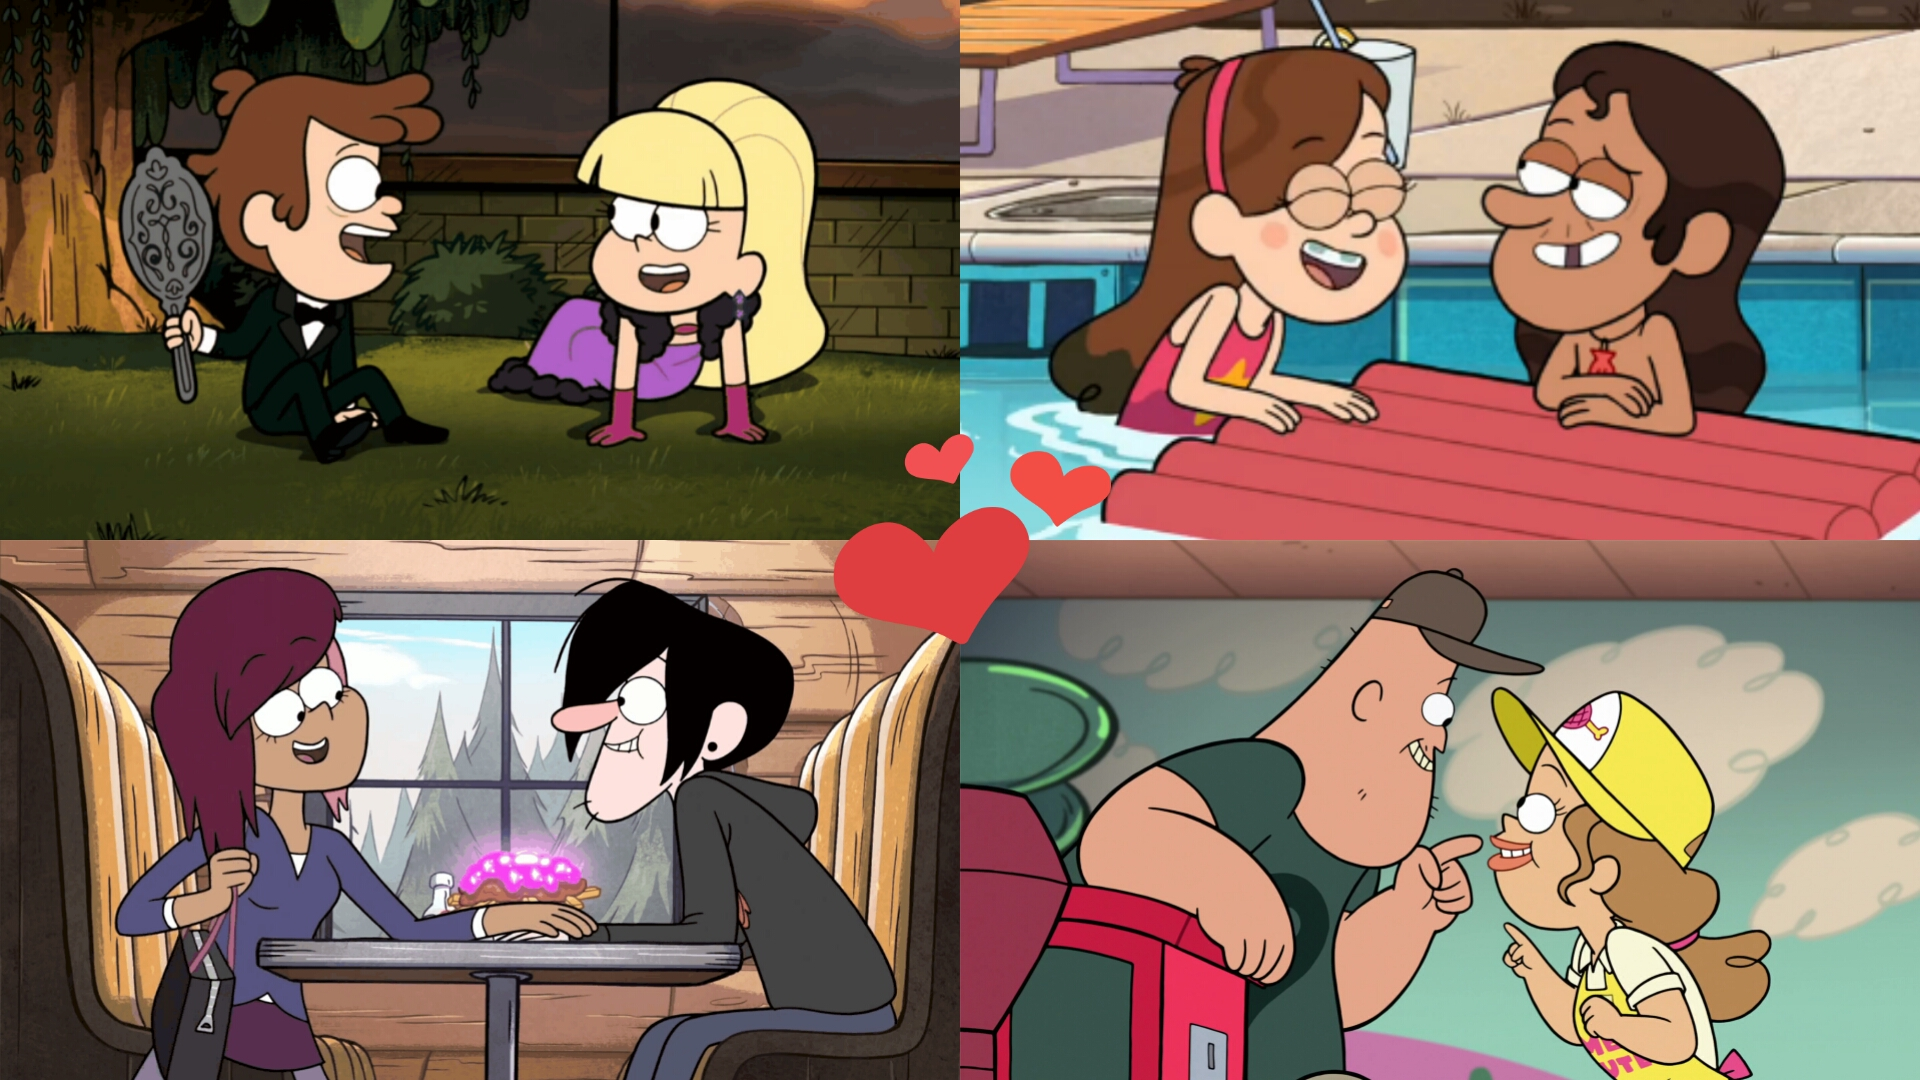 sister sister valentines day episode - My Favourite Gravity Falls Pairings by WG2020TV on DeviantArt